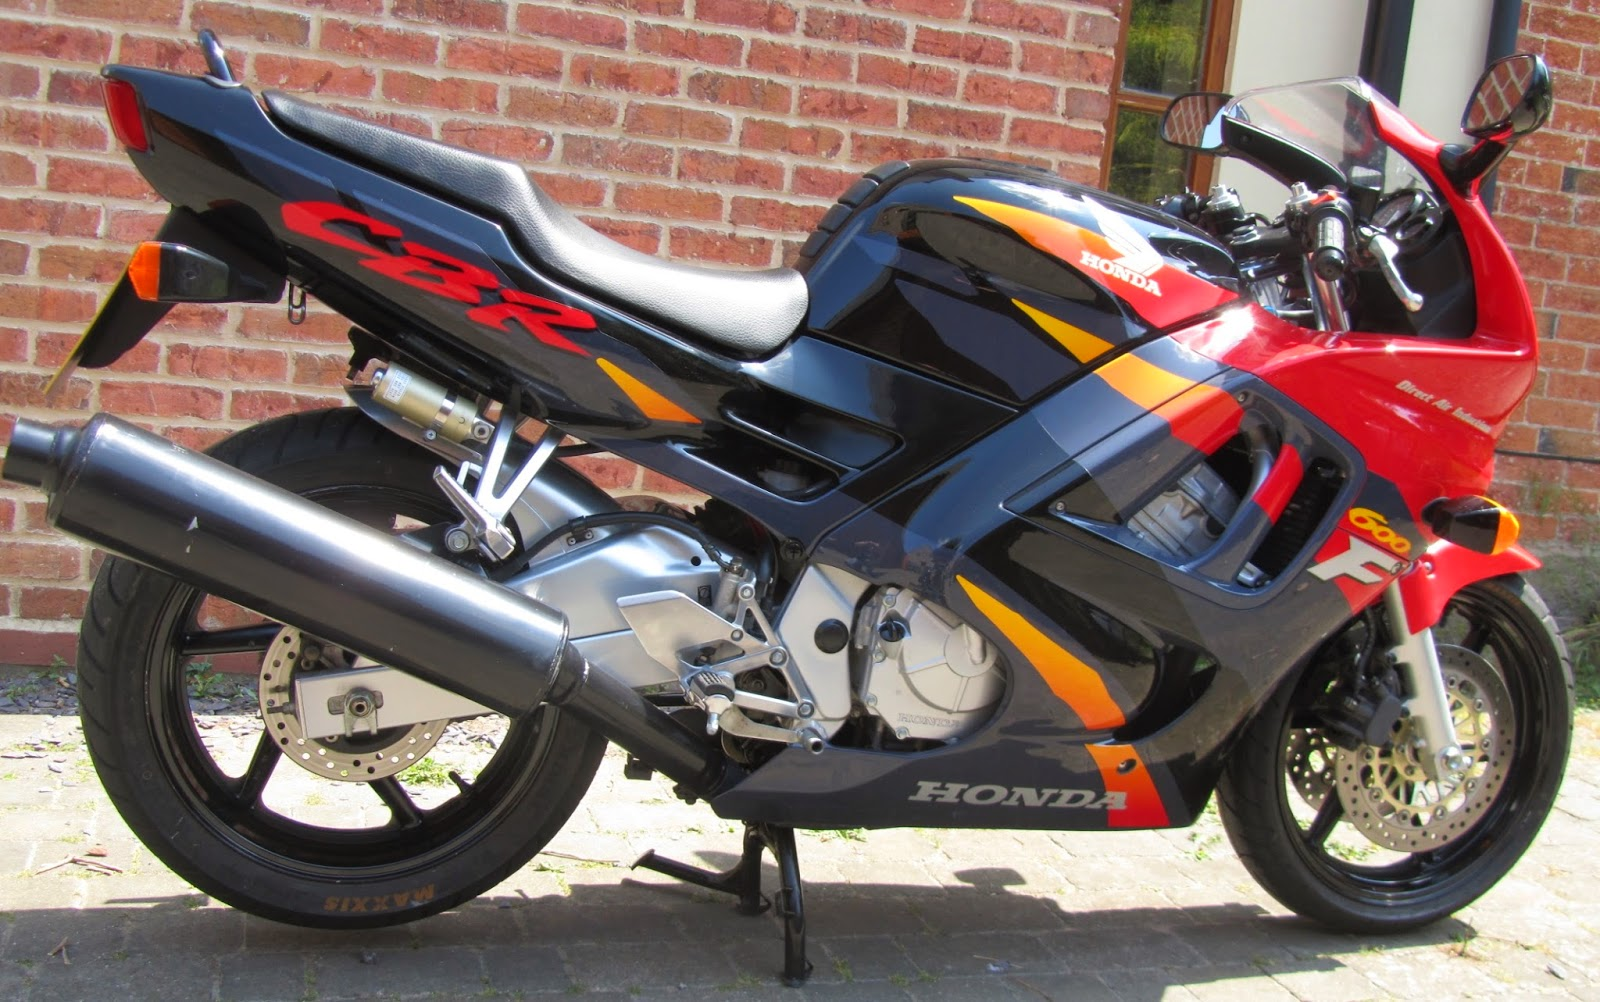 CBR600 FS 1995 UK Specification Red/Black